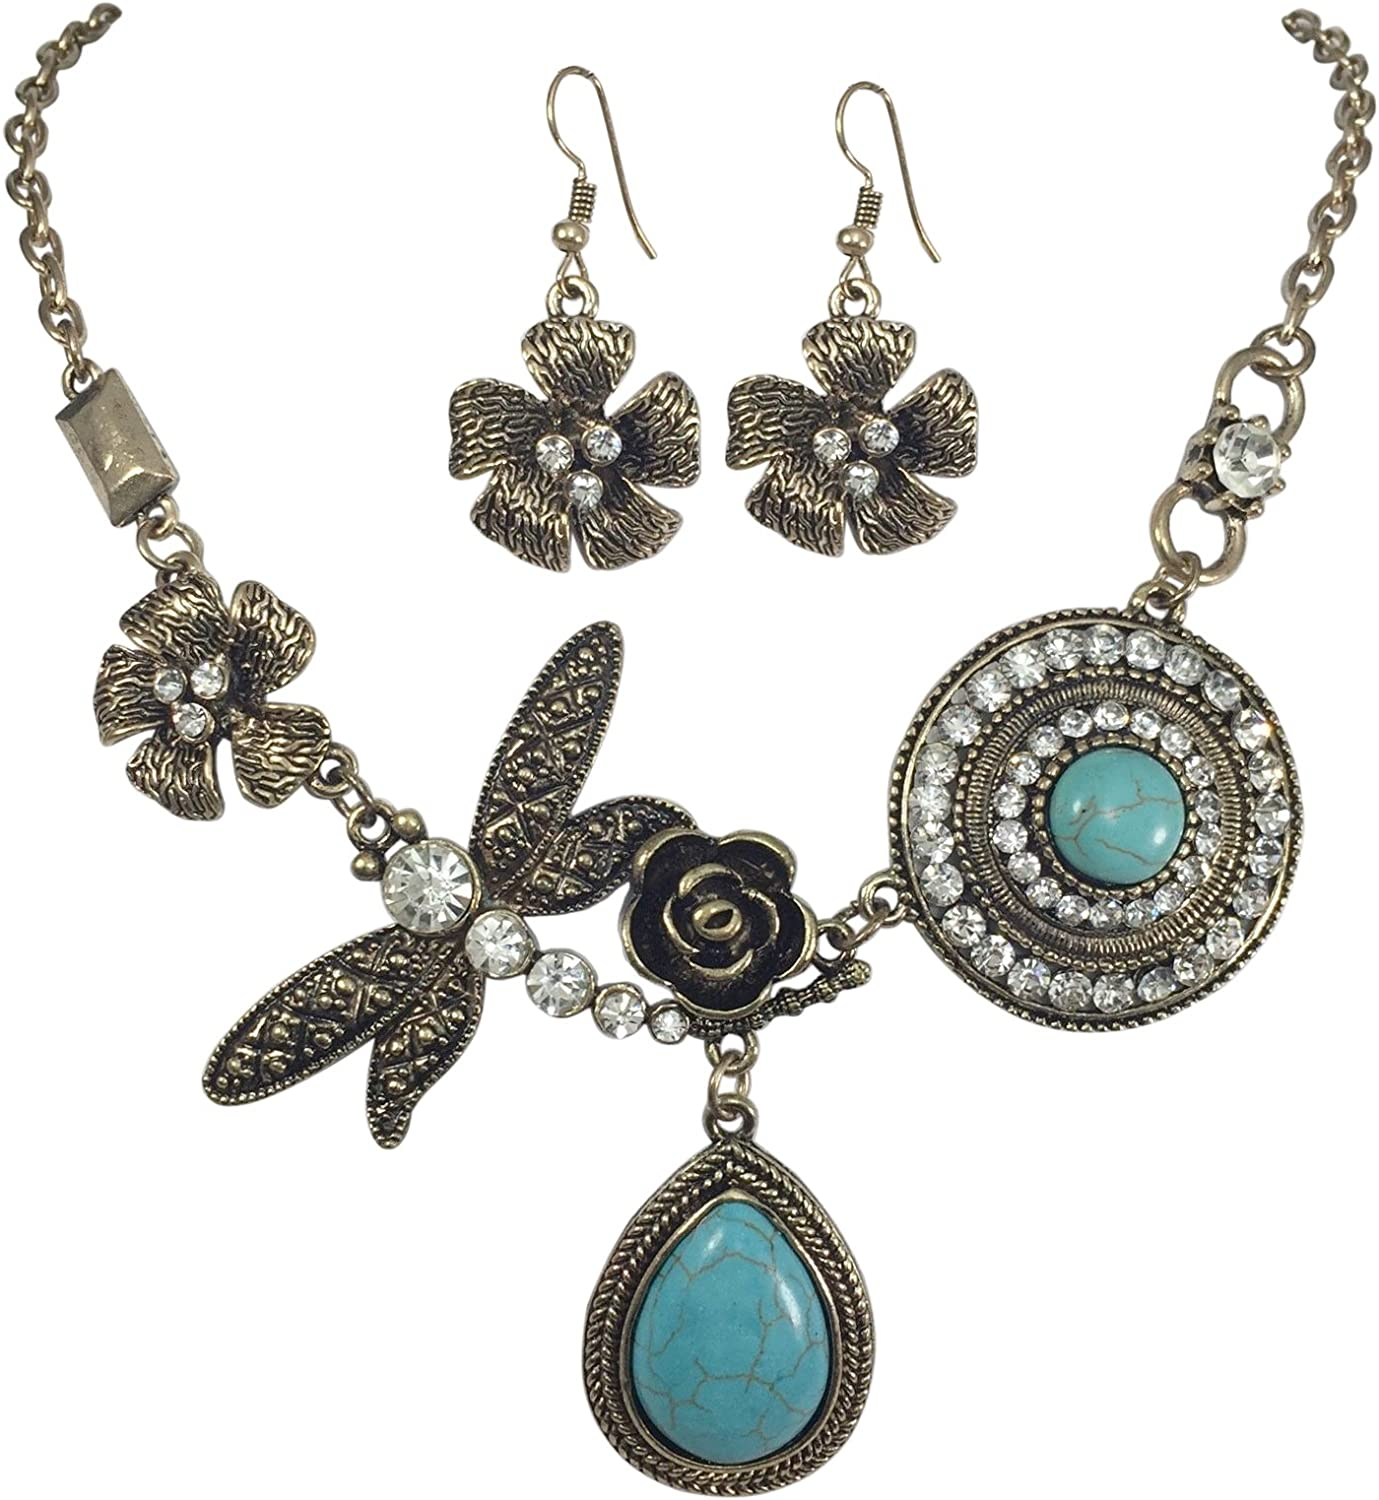 Gypsy Jewels Unique Simulated Turquoise with Dragonfly Vintage Look Necklace & Dangle Earring Set